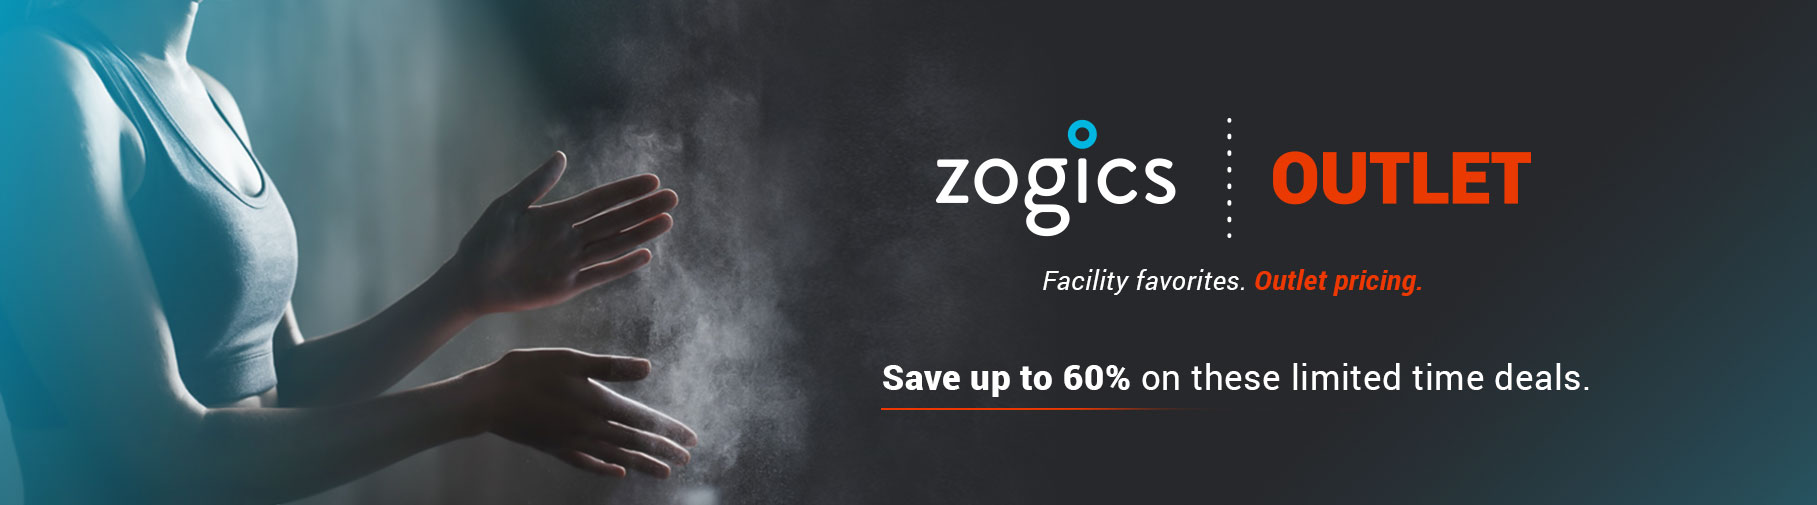 Zogics Outlet - Facility favorites. Outlet prices